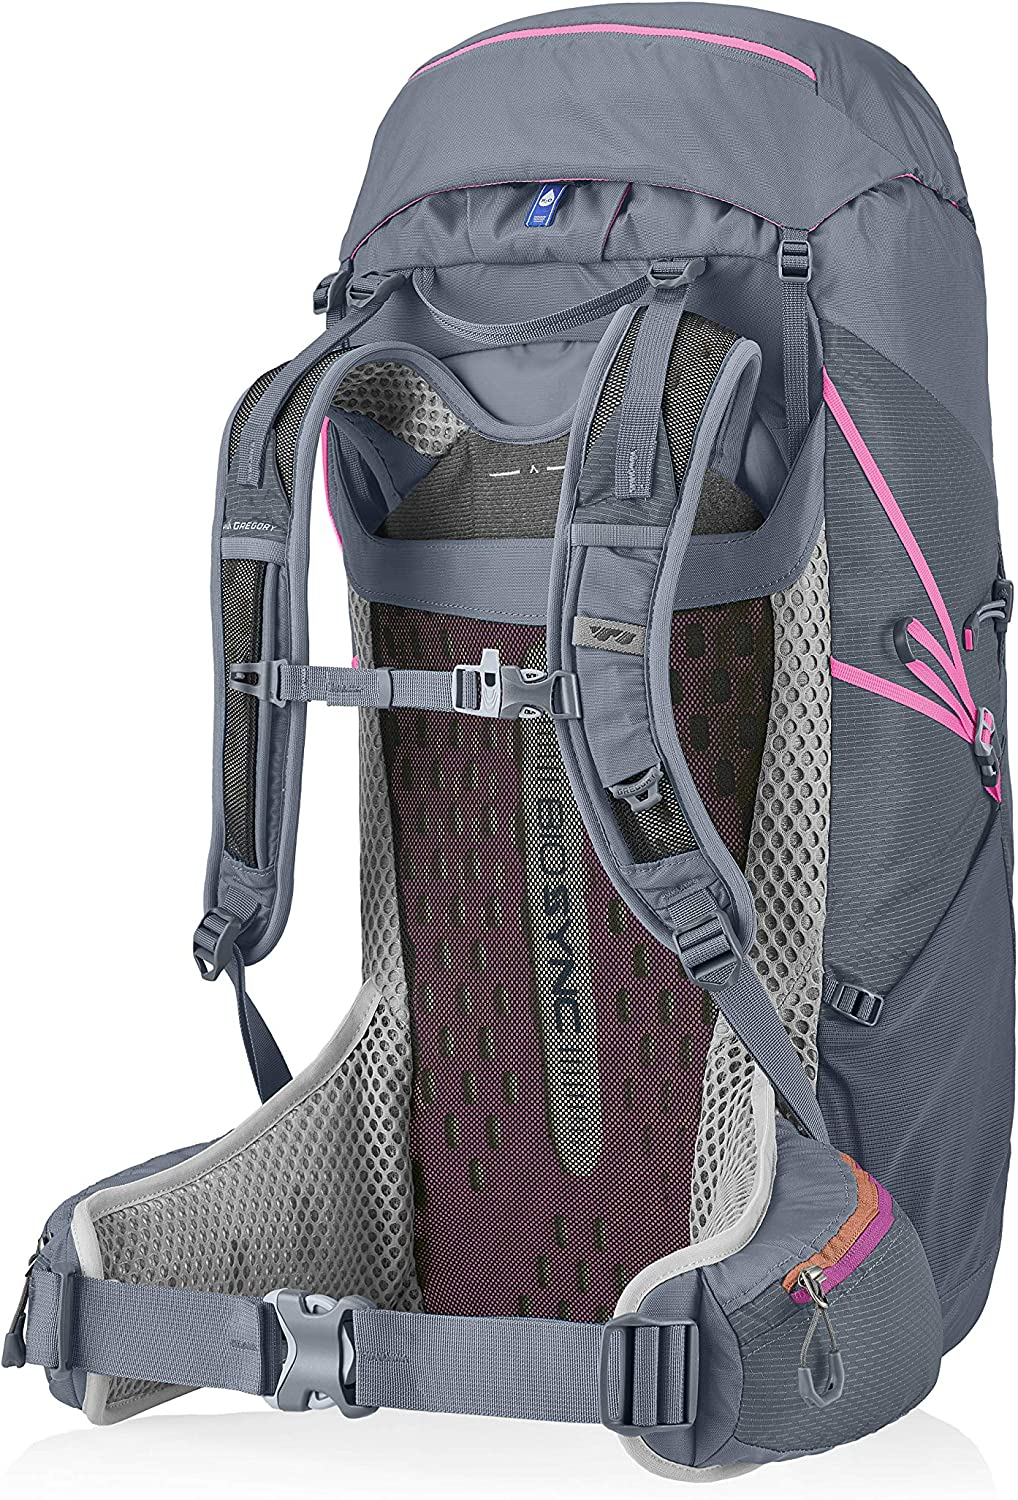 Gregory Mountain Products Womens Maya 30 Hiking